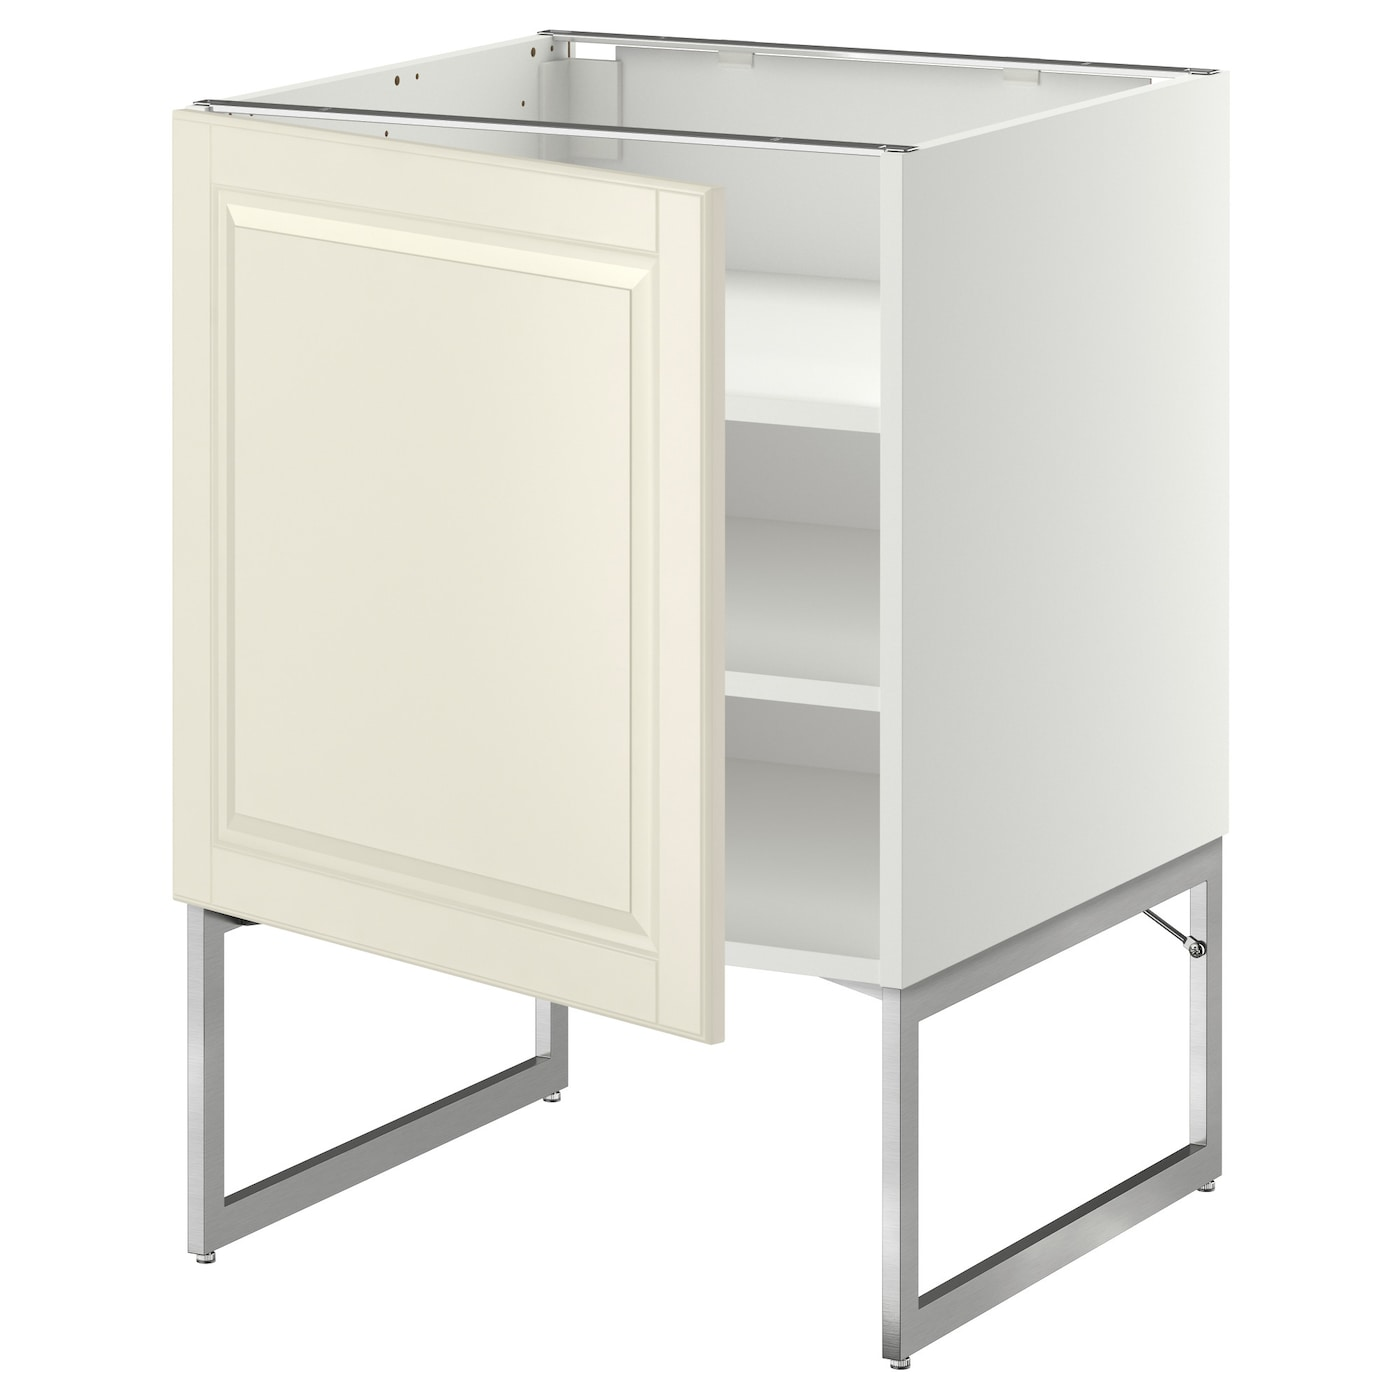 Metod base cabinet with shelves white bodbyn off white for Off the shelf kitchen units